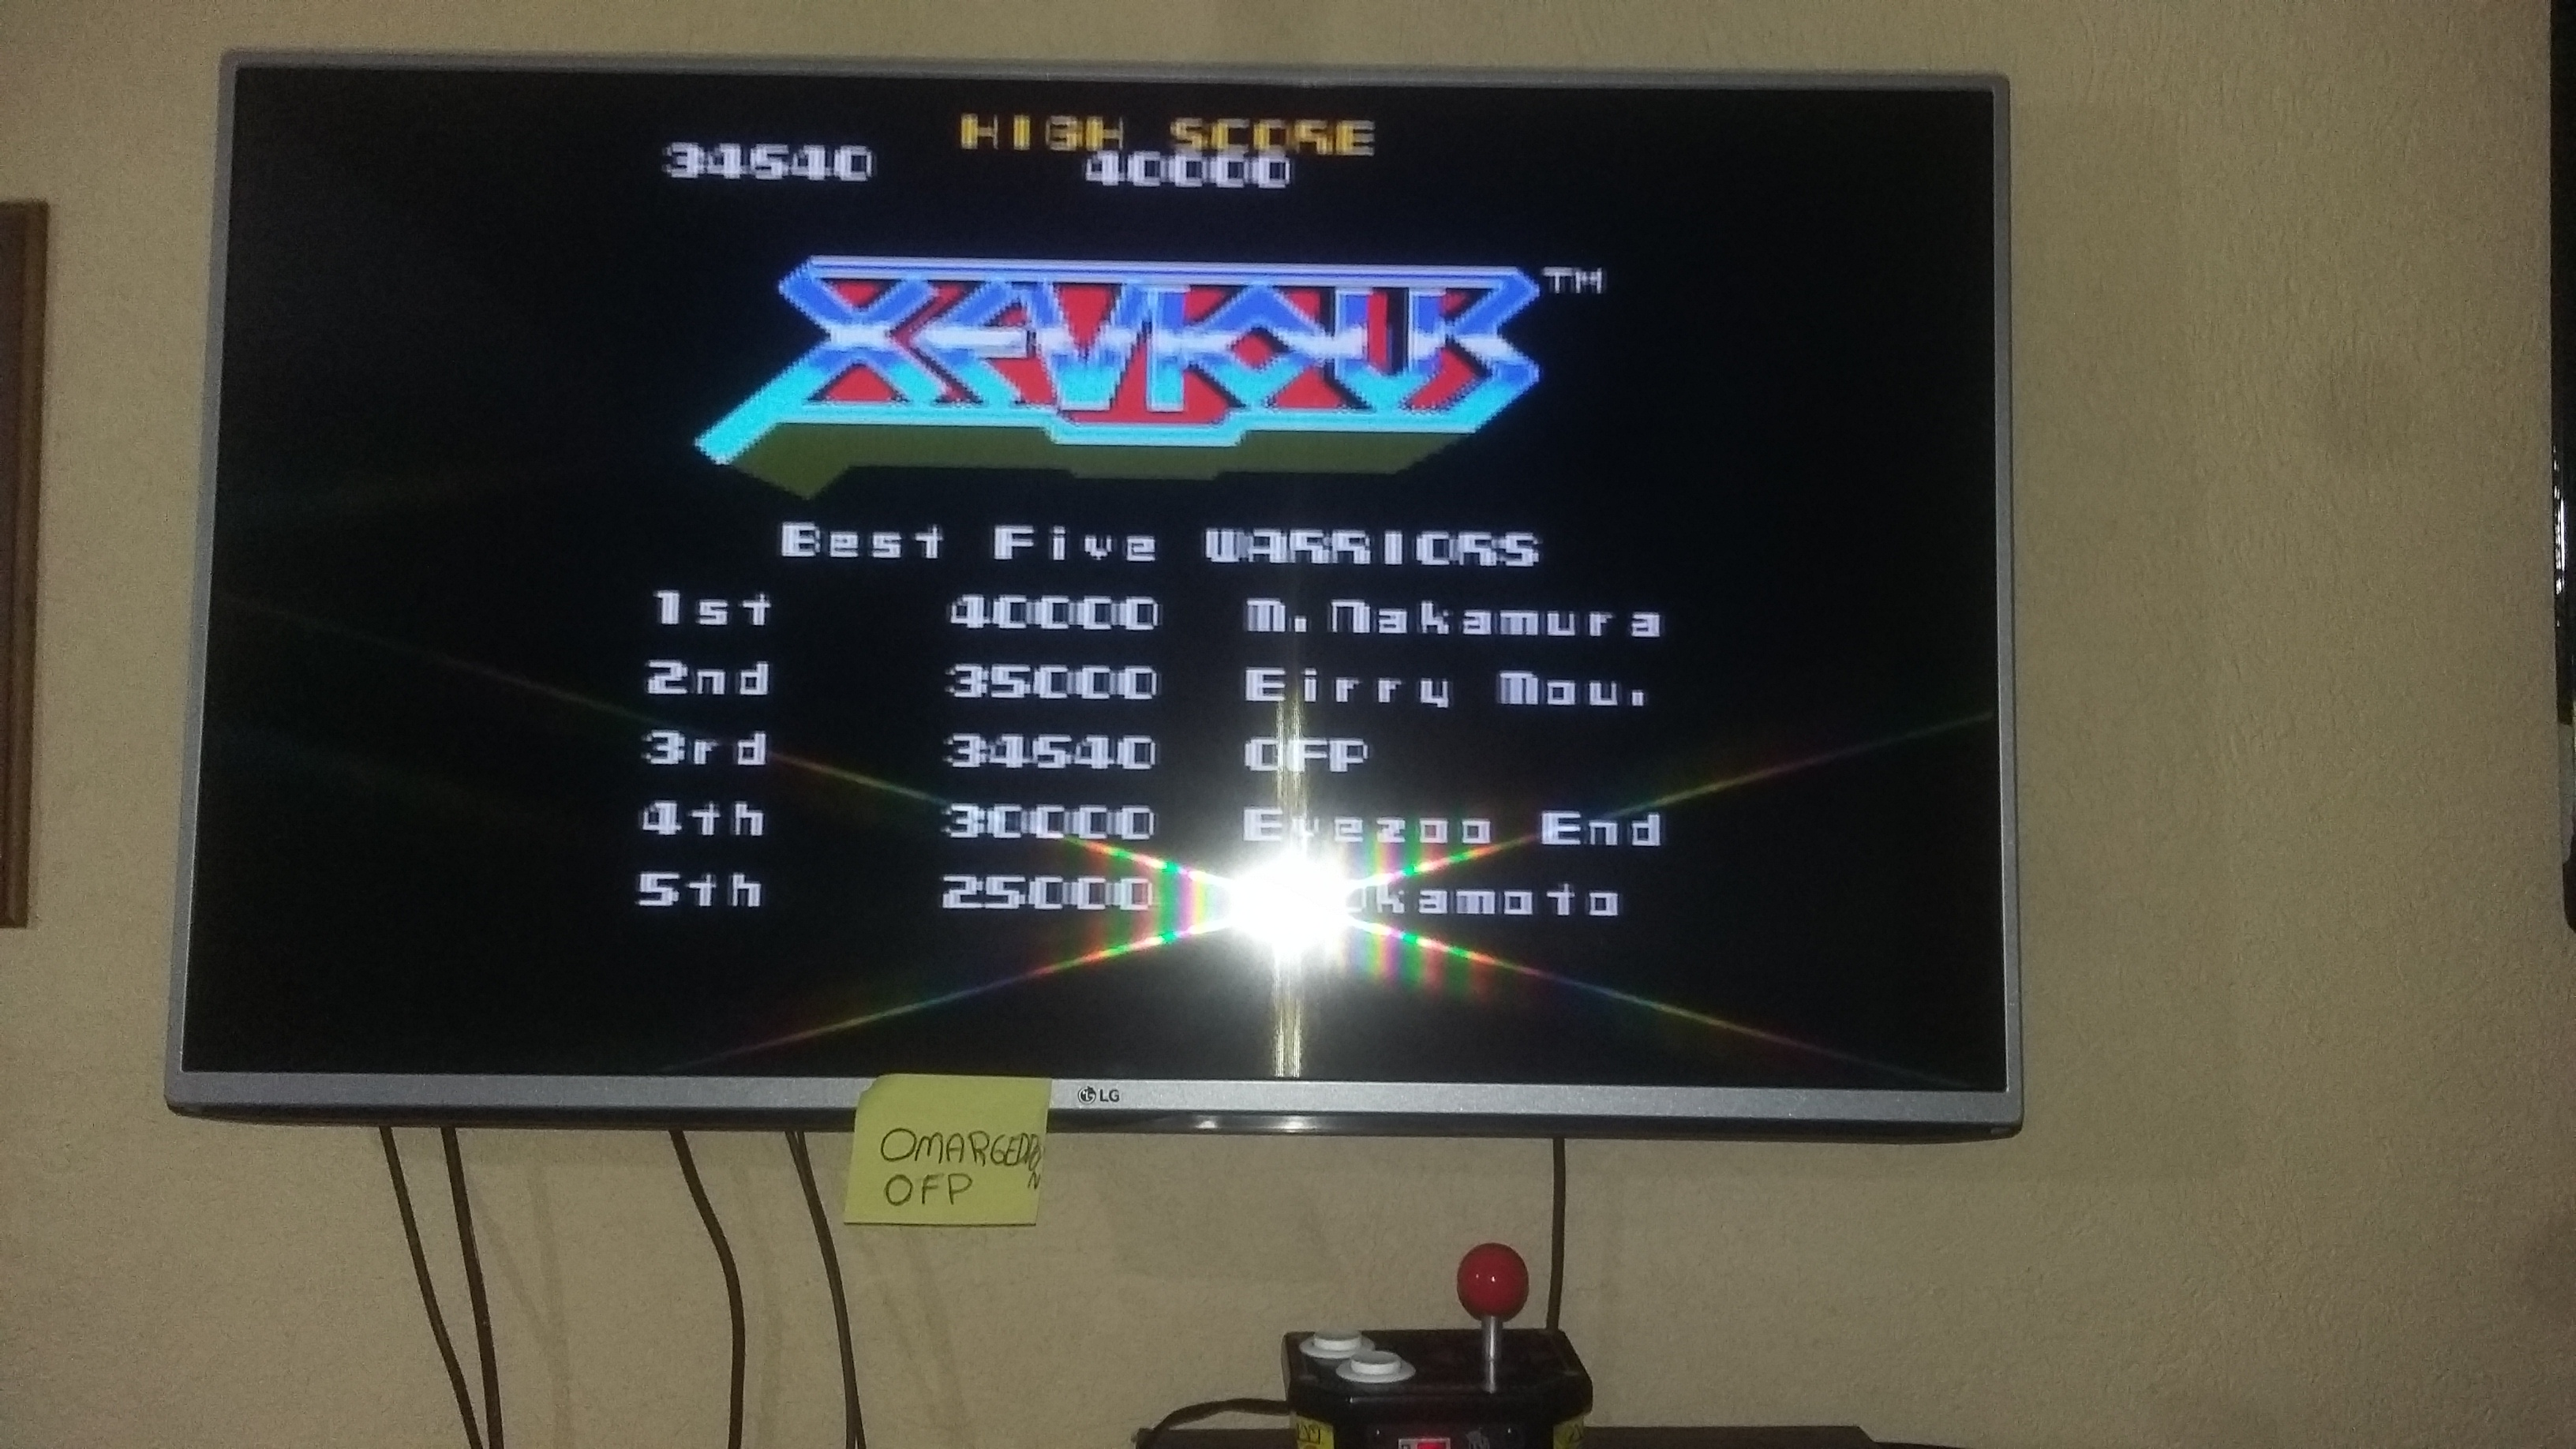 Xevious 34,540 points